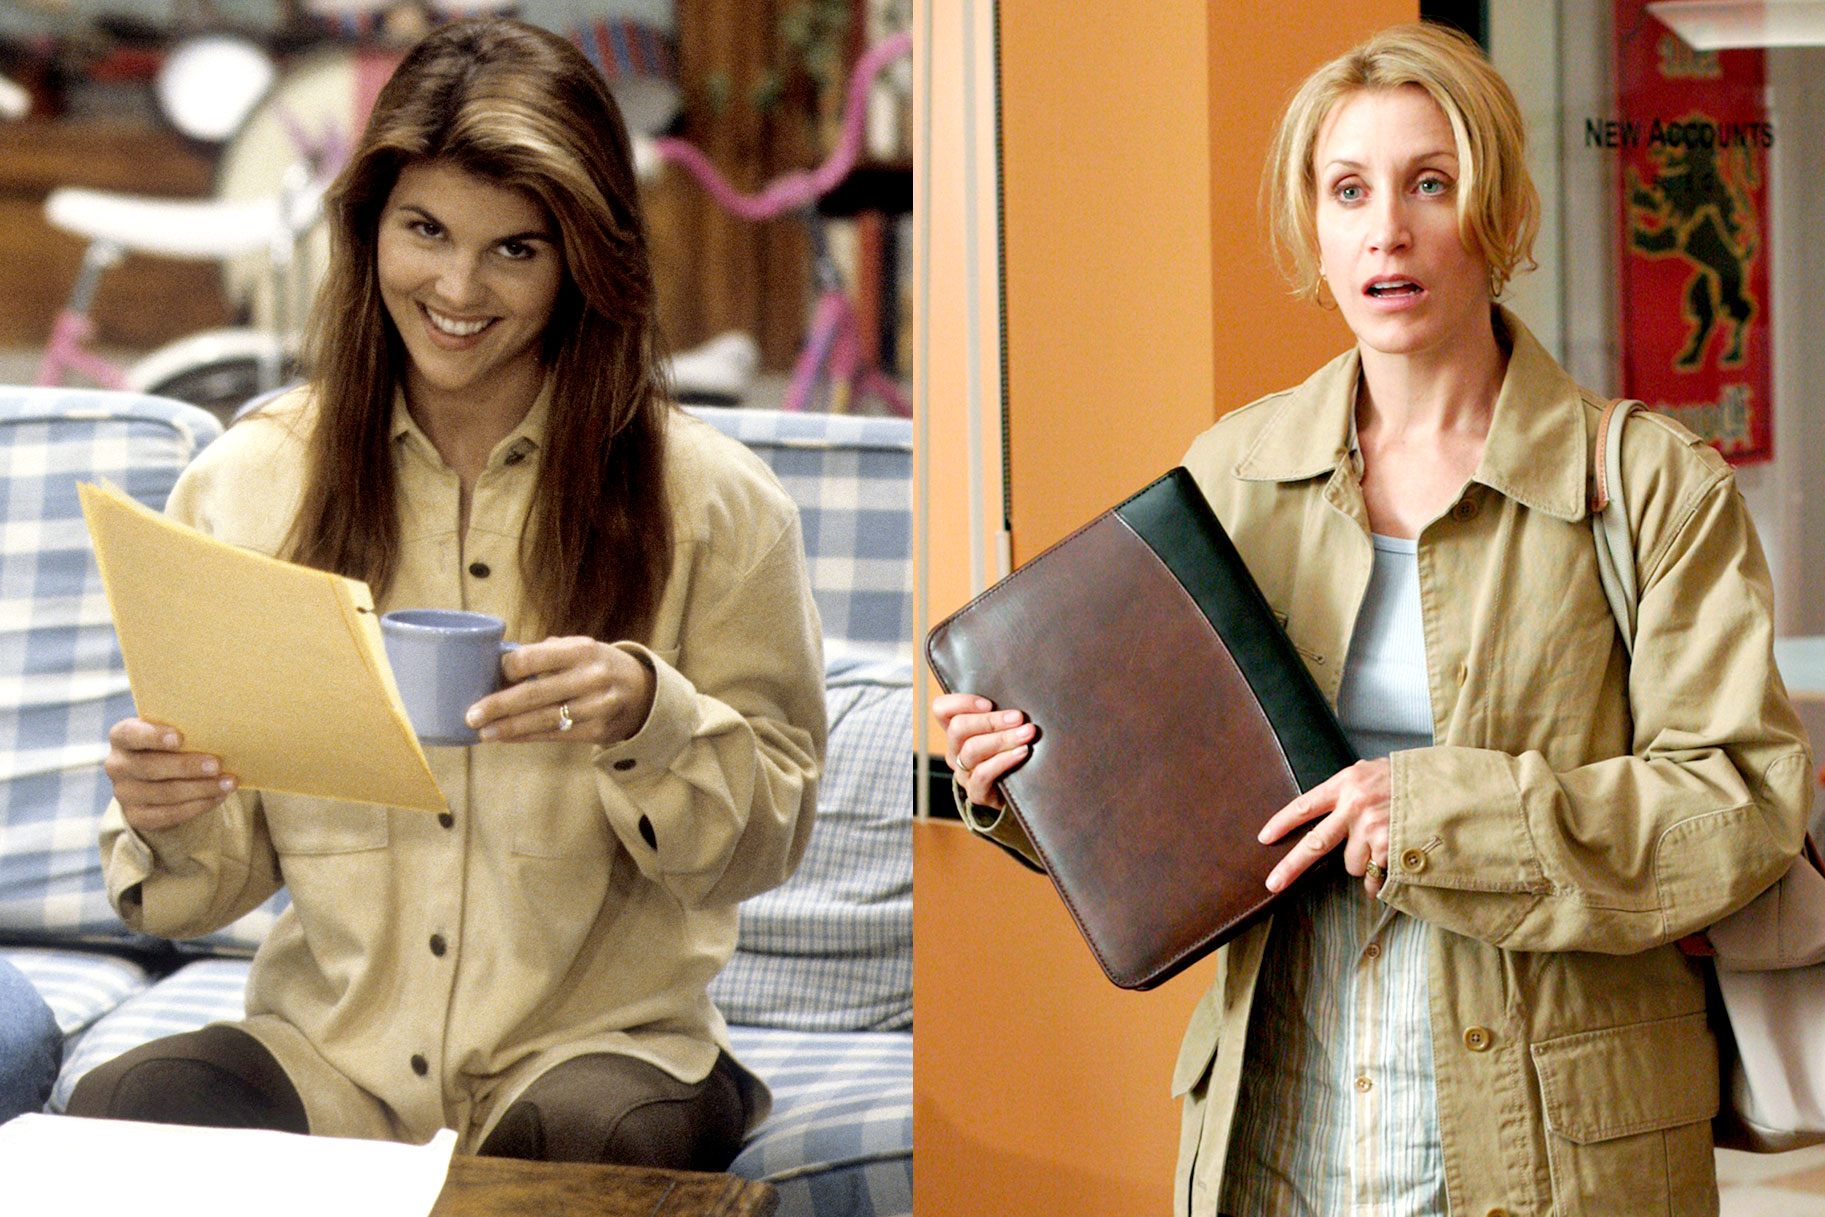 Lori Loughlin as Aunt Becky Katsopolis; Felicity Huffman as Lynette Scavo